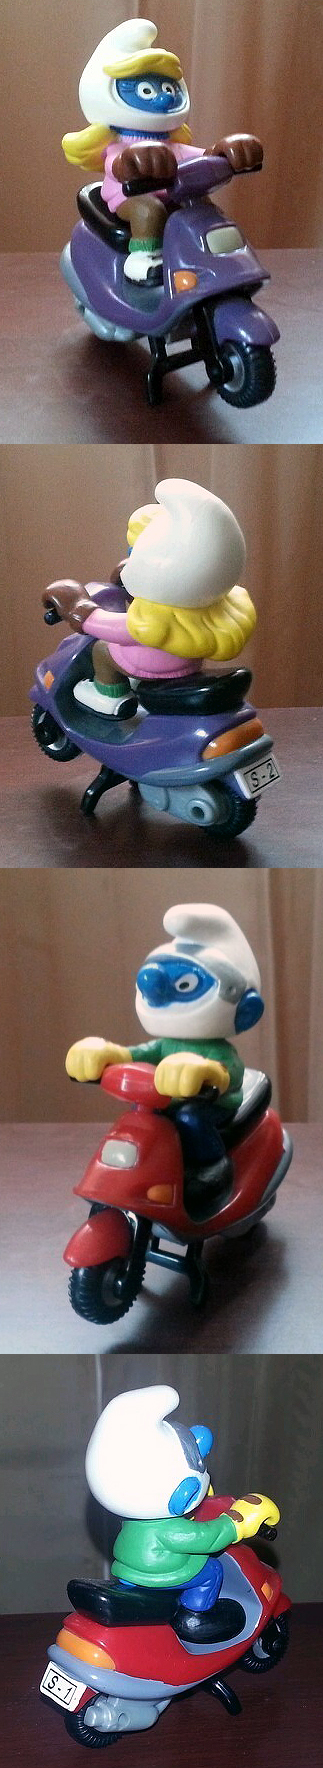 Vespa Honda Spree Elite Smurfs Scooter Toys